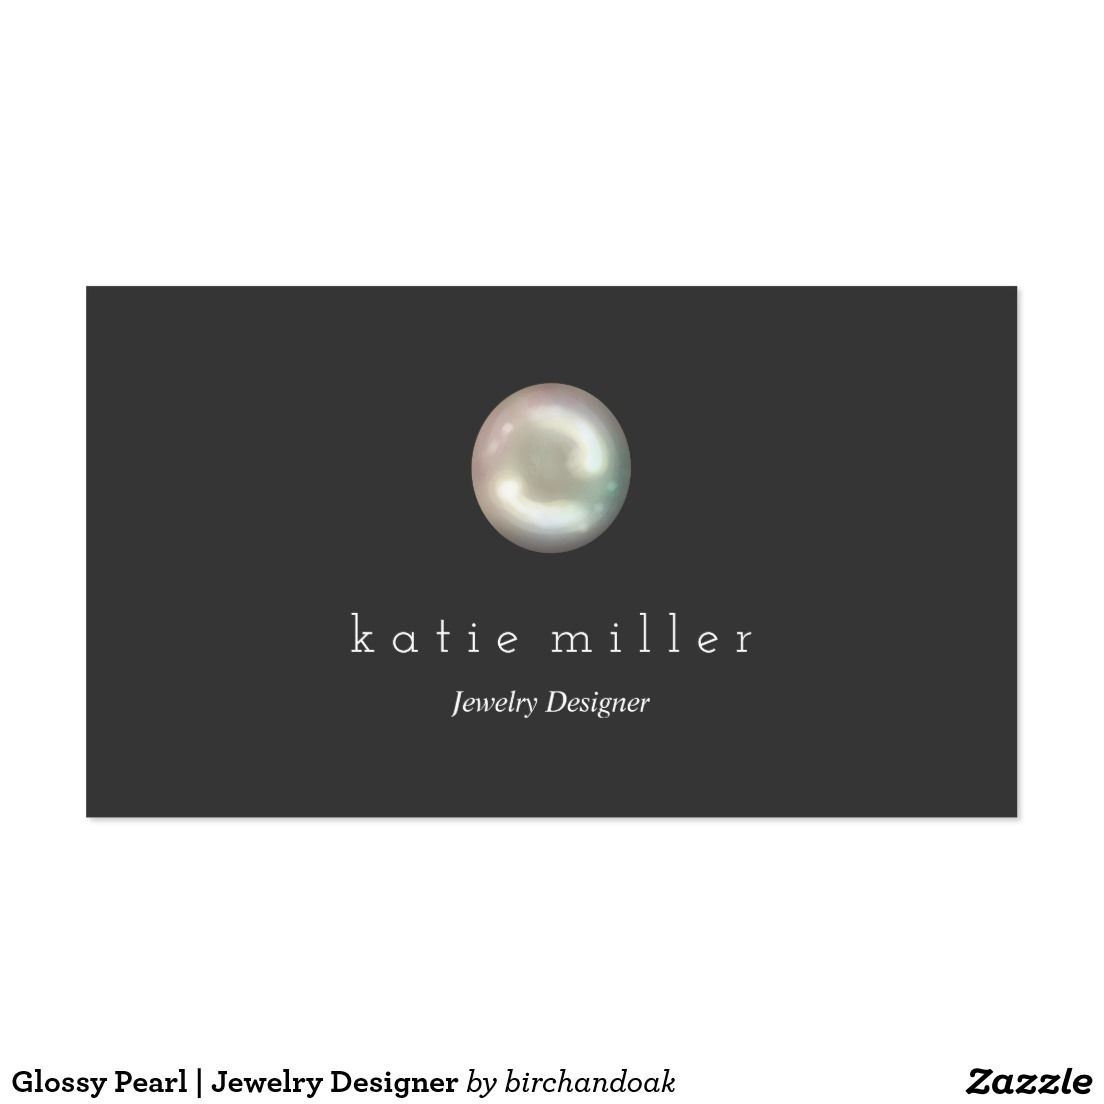 Glossy Pearl | Jewelry Designer Business Card | Business Cards ...